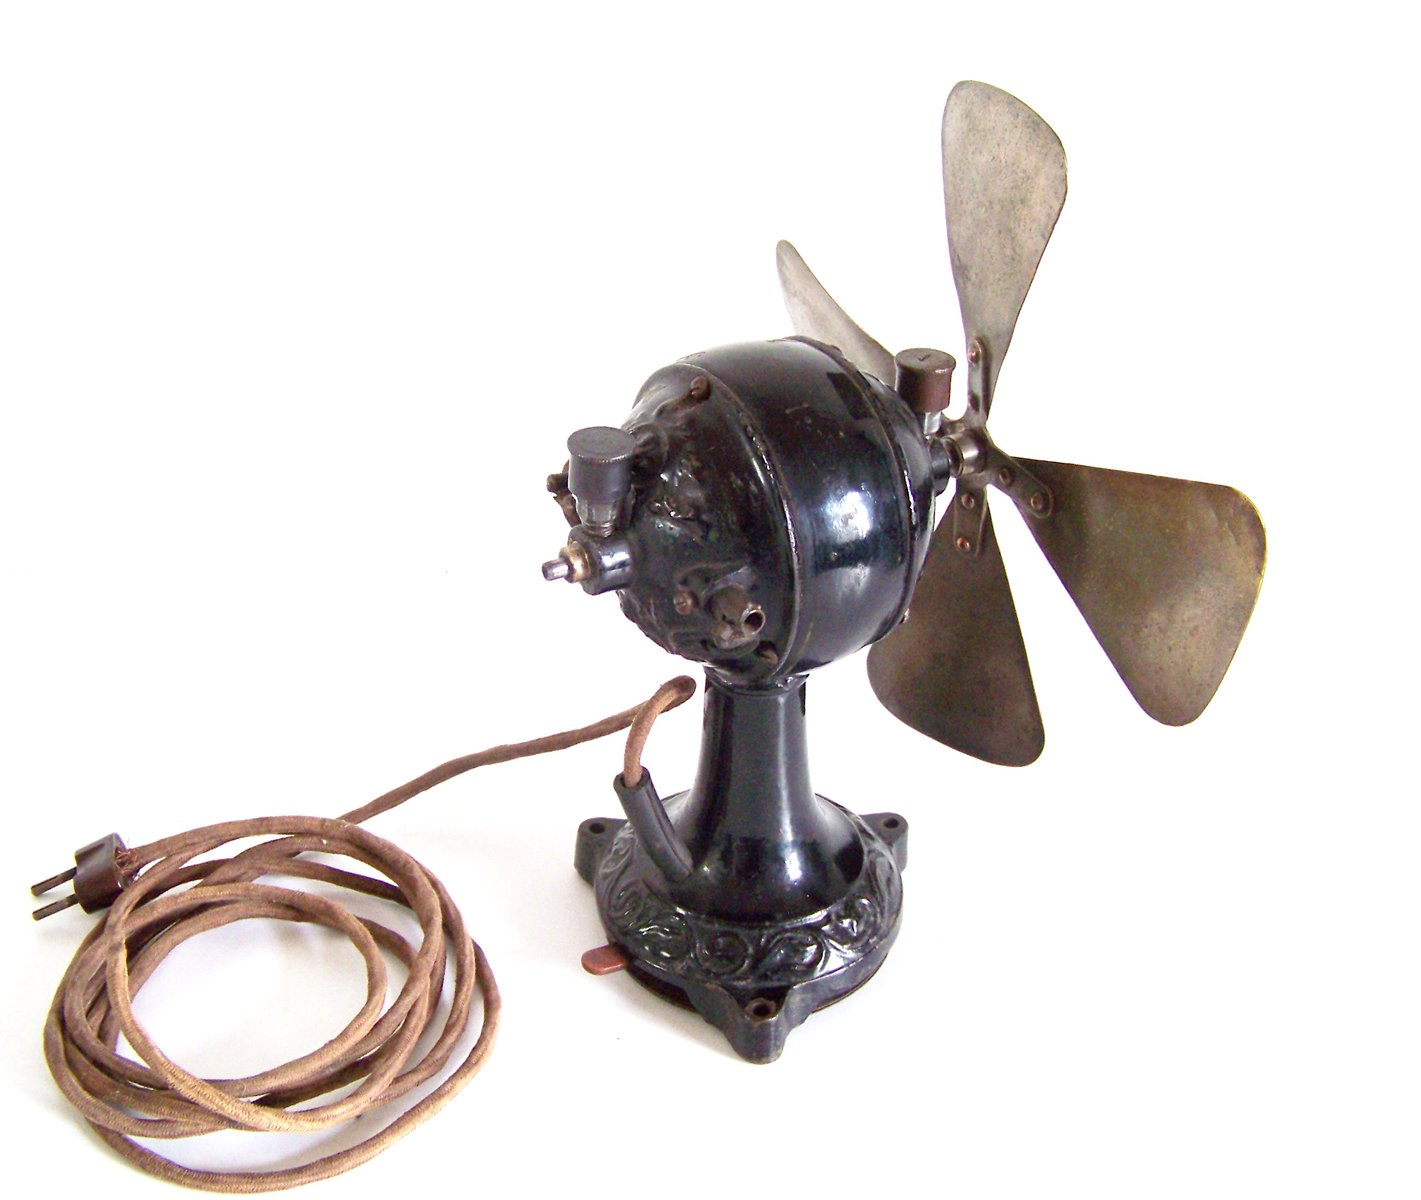 Antique Desk Fan, 1910s - Antique Desk Fan, 1910s For Sale At Pamono